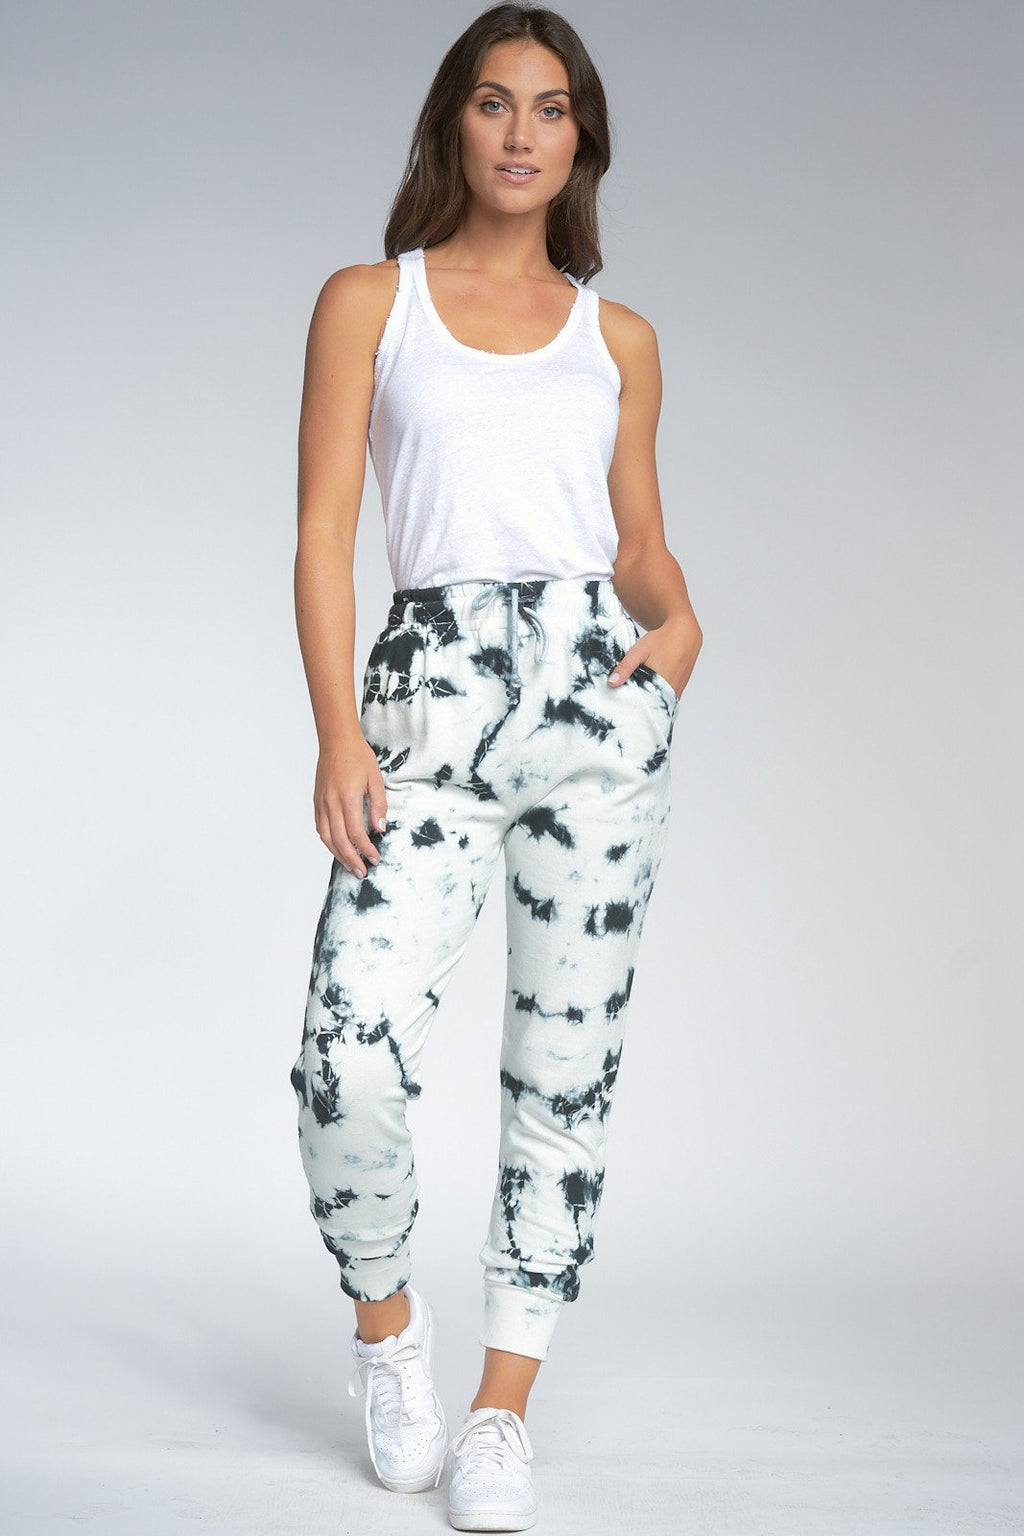 Elan Alex Joggers in Black Tie Dye